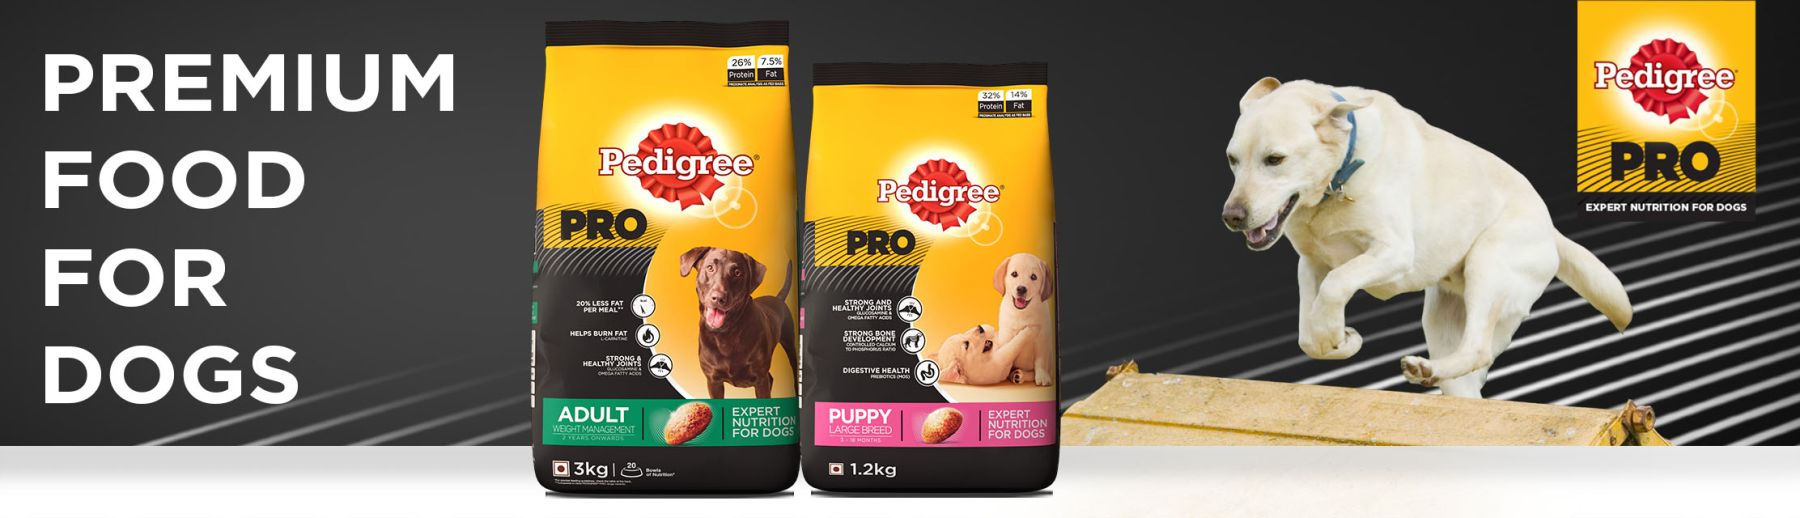 Pet Day Special Offers on Pet Food and Supplies Online at